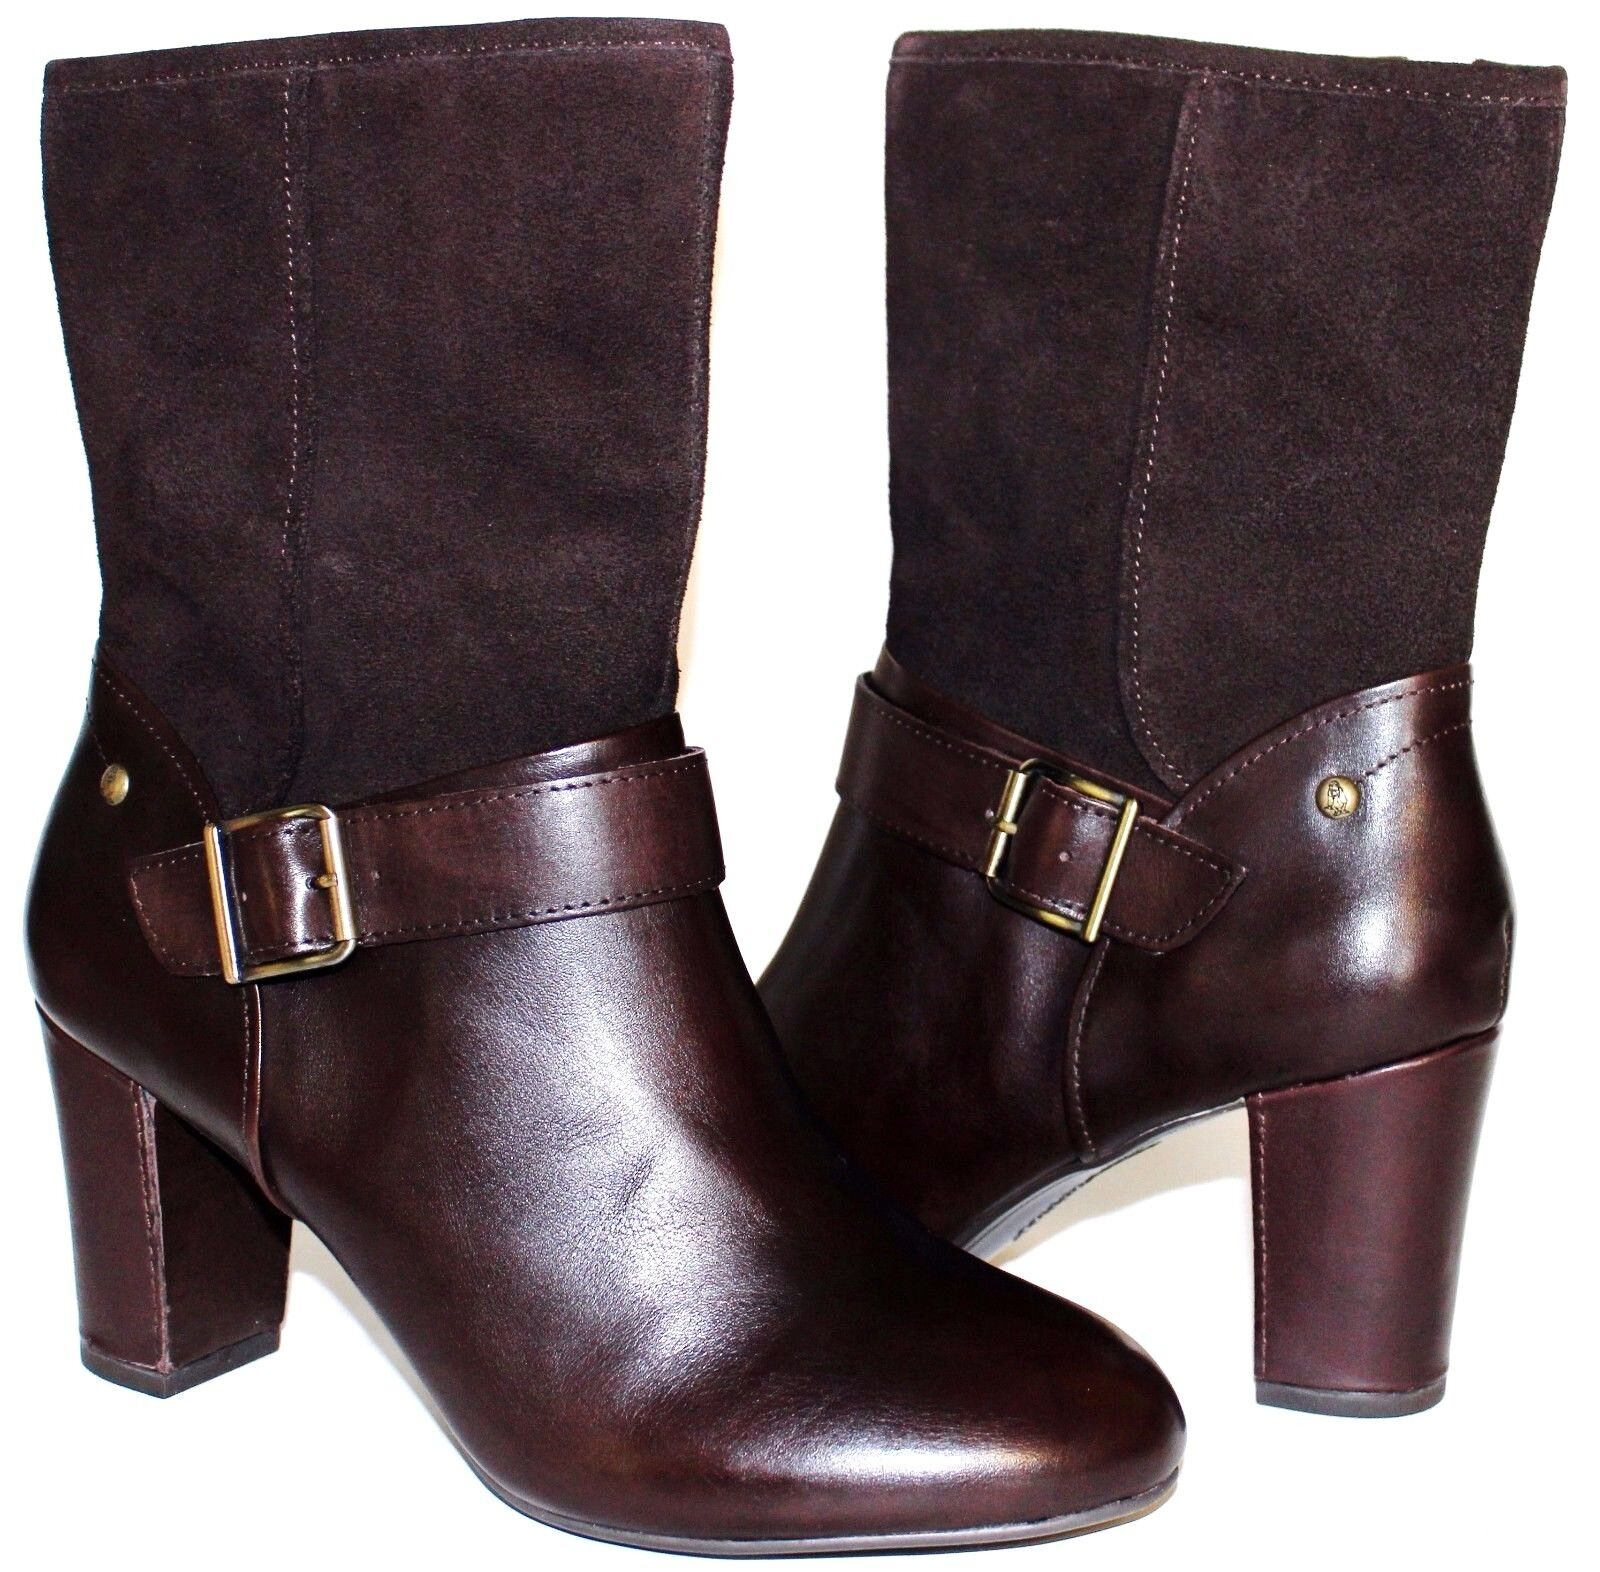 HUSH PUPPIES Waterproof Brown Premium Leather 3 Heel Zip Boots 11 W NEW  L@@K